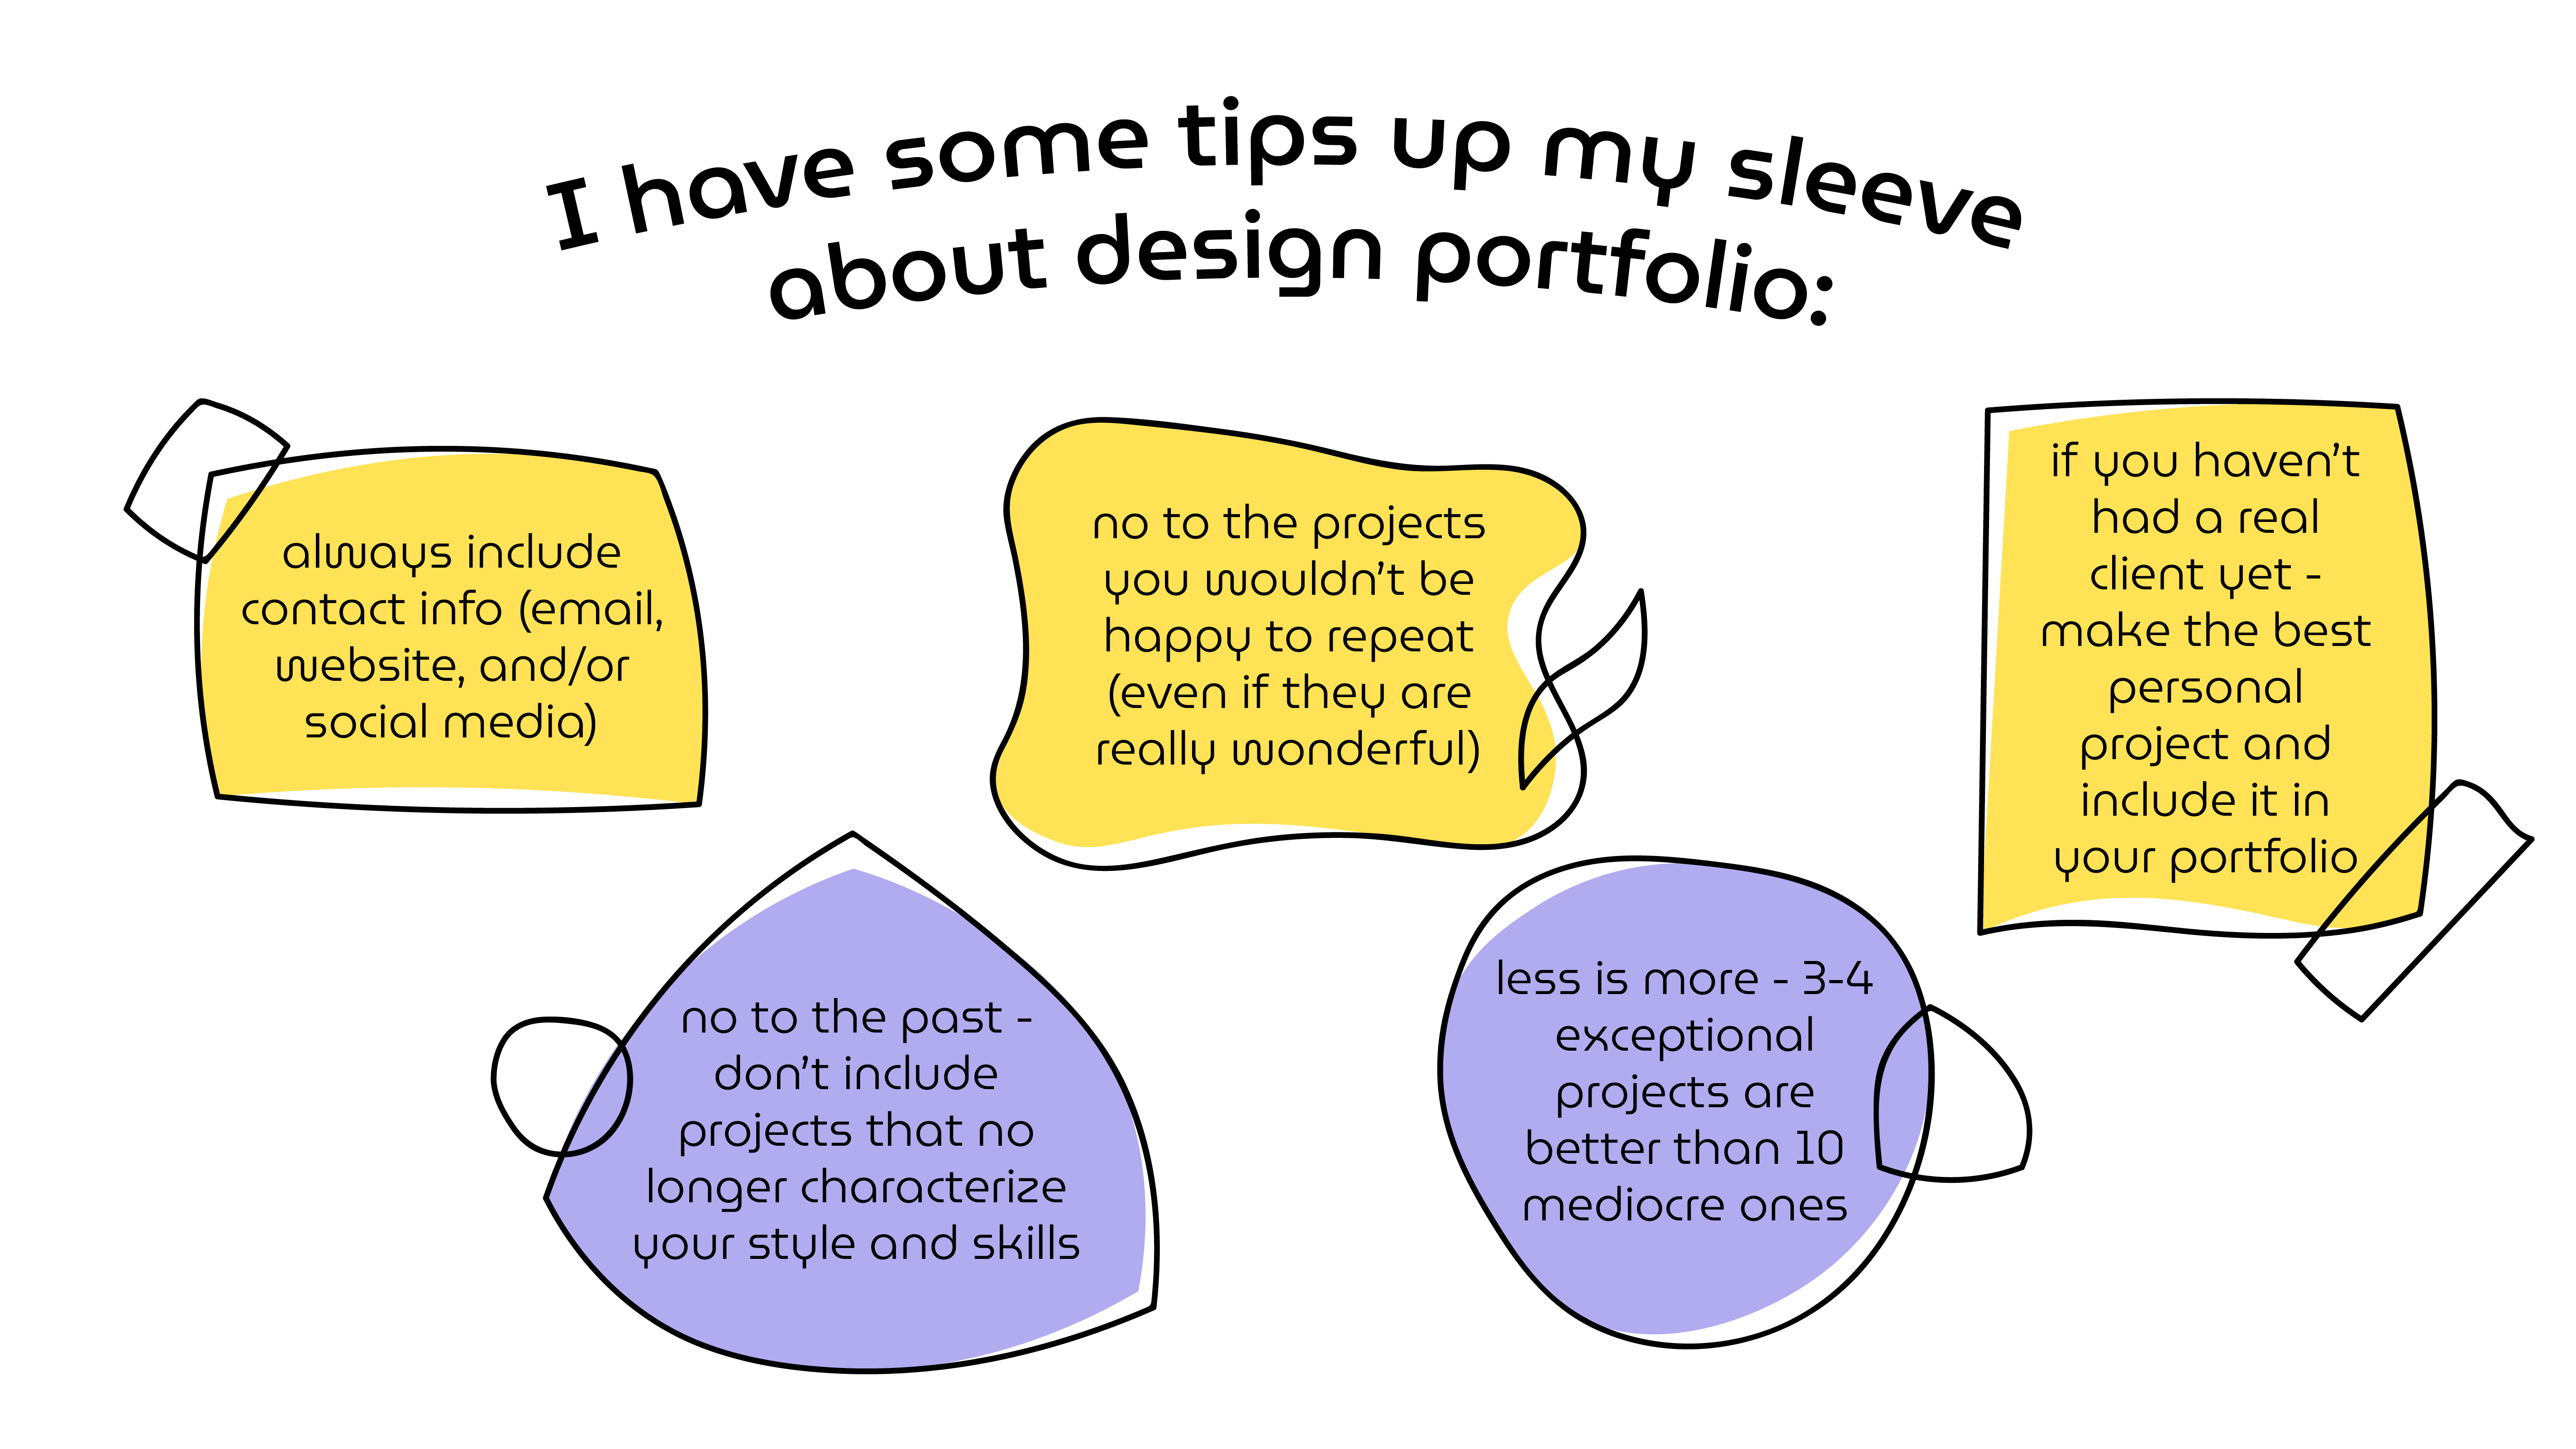 An outline illustration with tips about design portfolio.